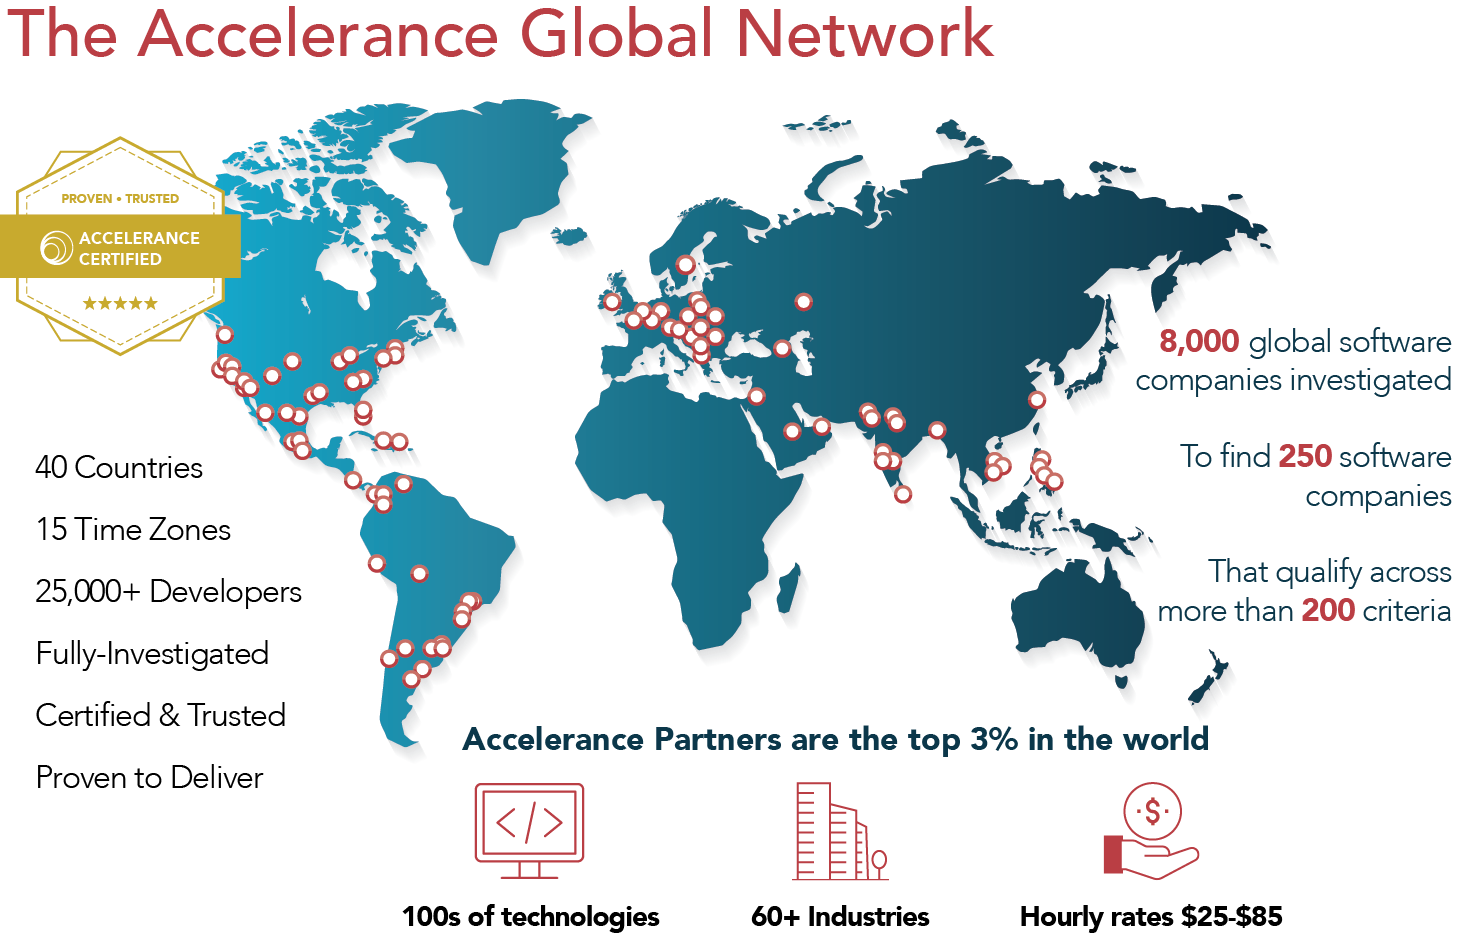 Accelerance Global Network